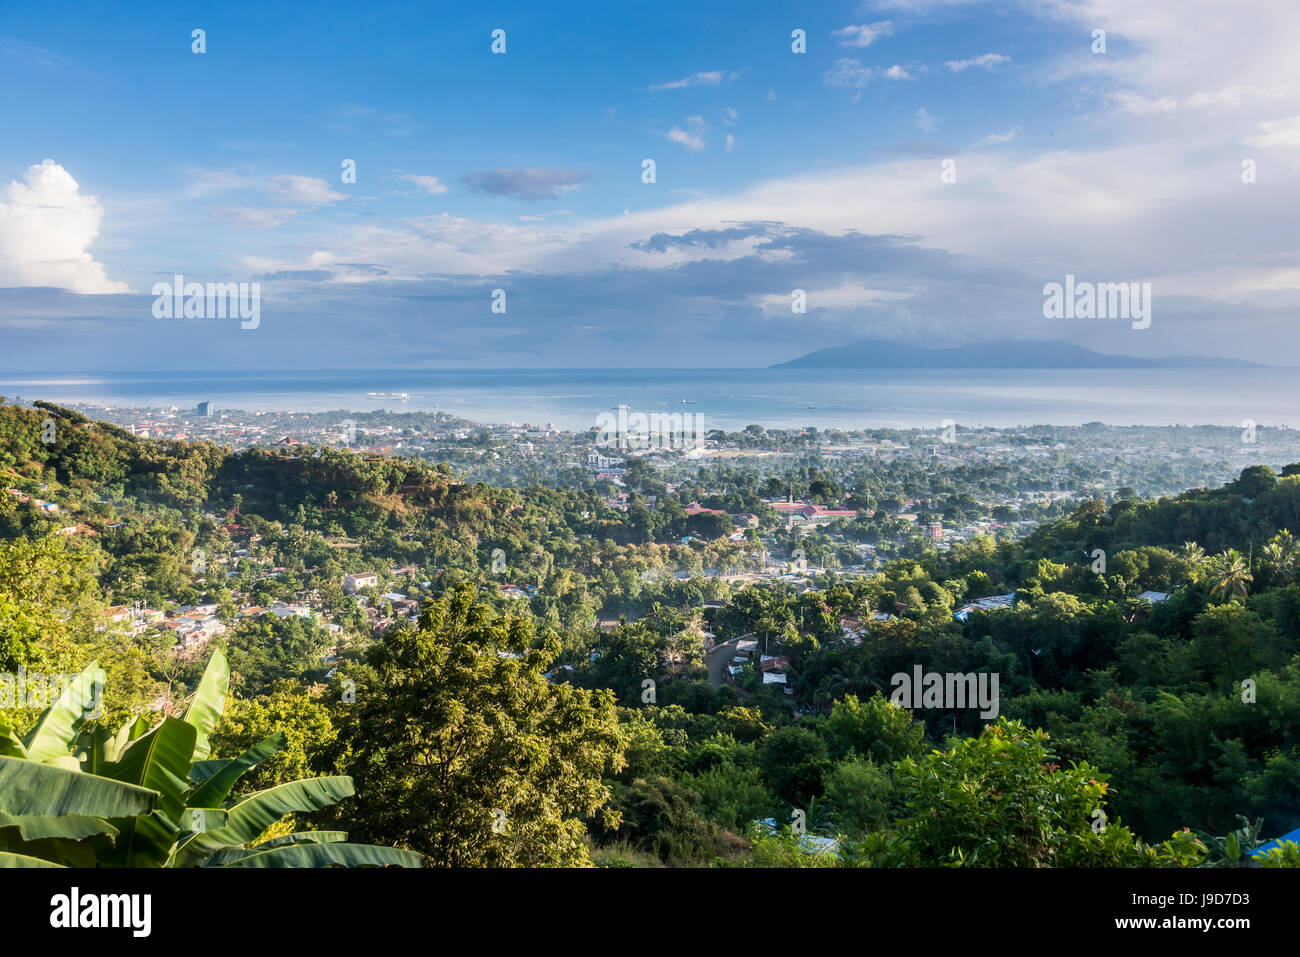 View over Dili, capital of East Timor, Southeast Asia, Asia - Stock Image